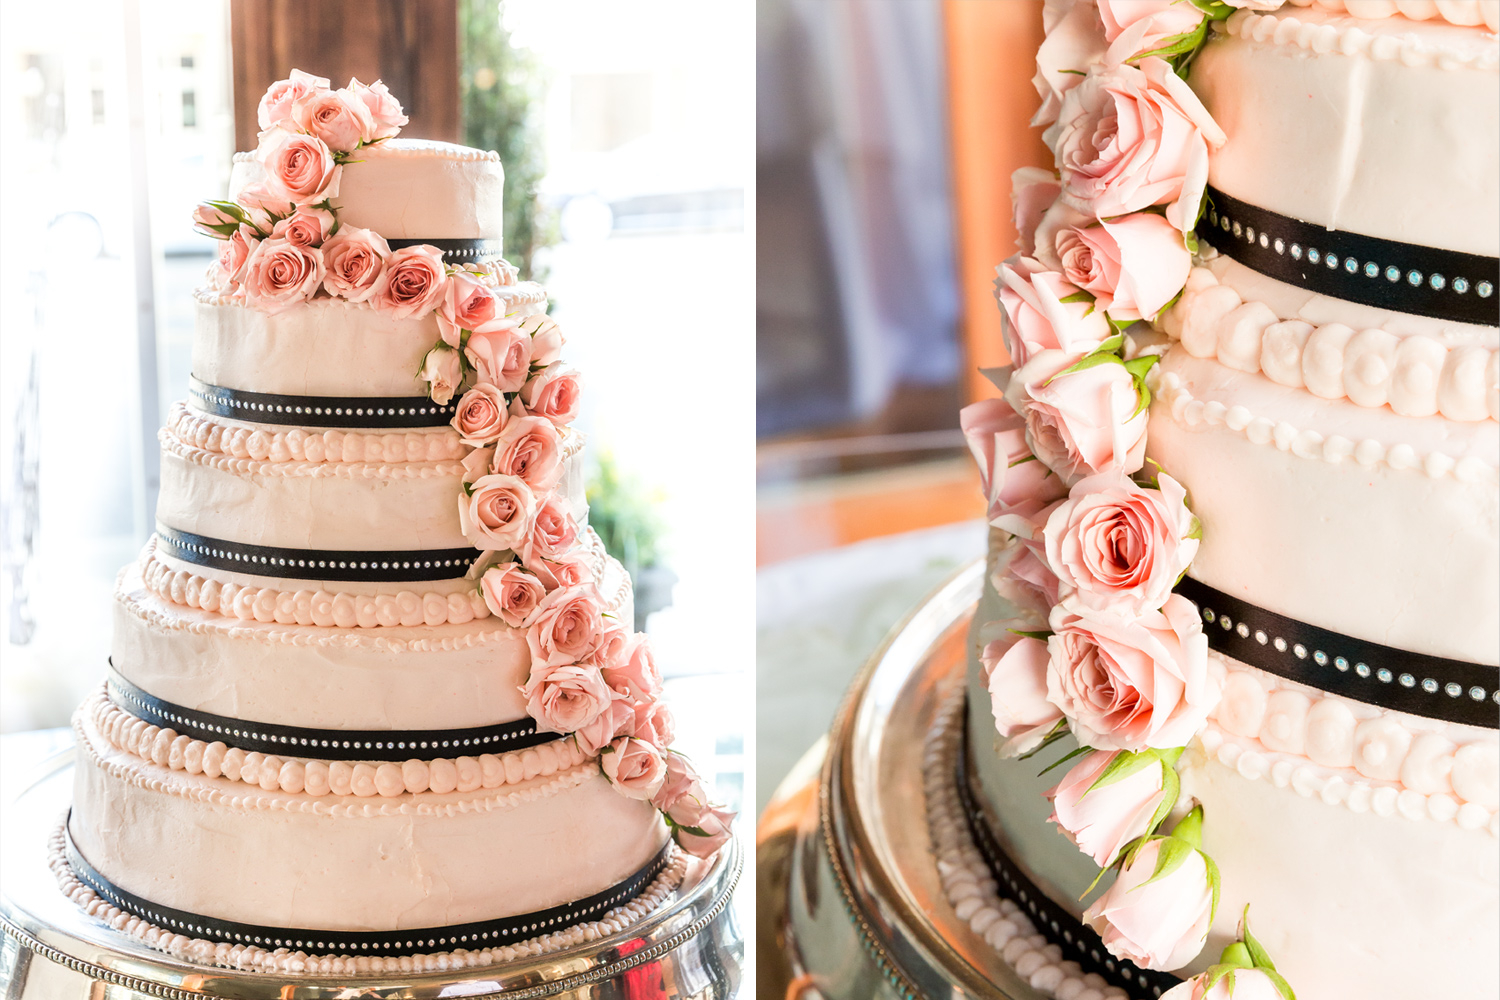 2015 Favorite Wedding Cakes in San Diego, California